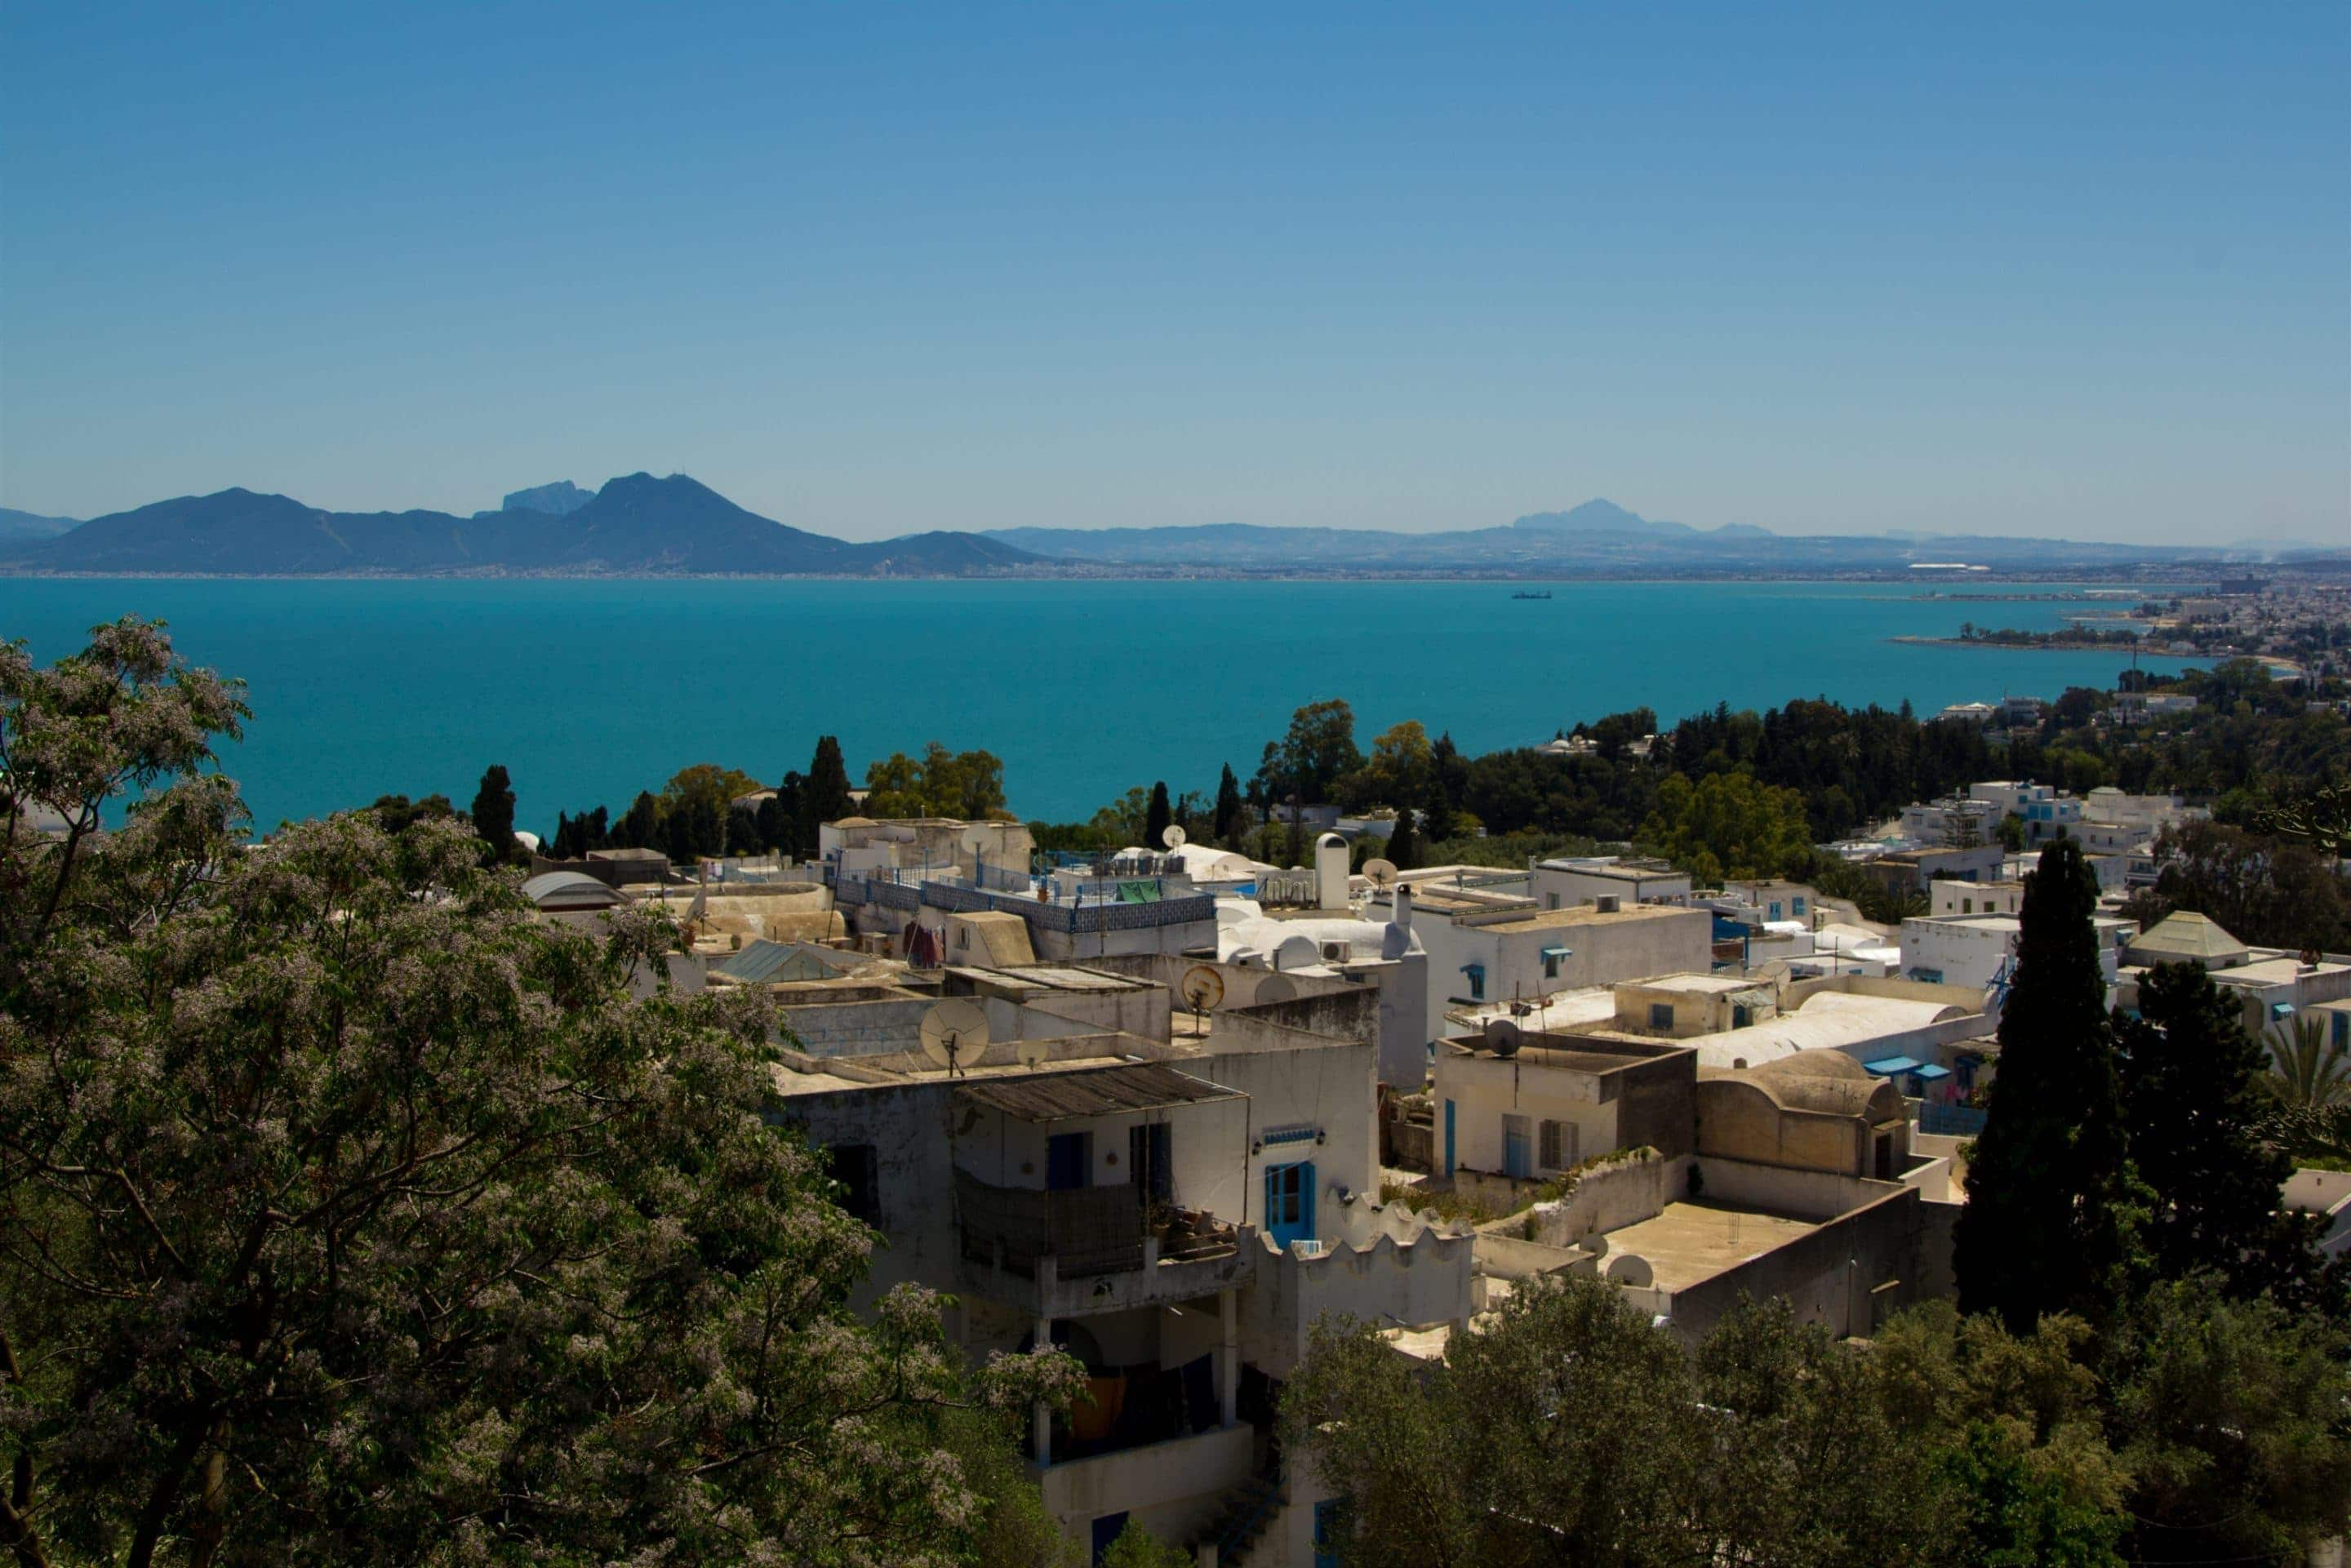 Sidi bou said tunisia photo copyright genevieve hathaway photography